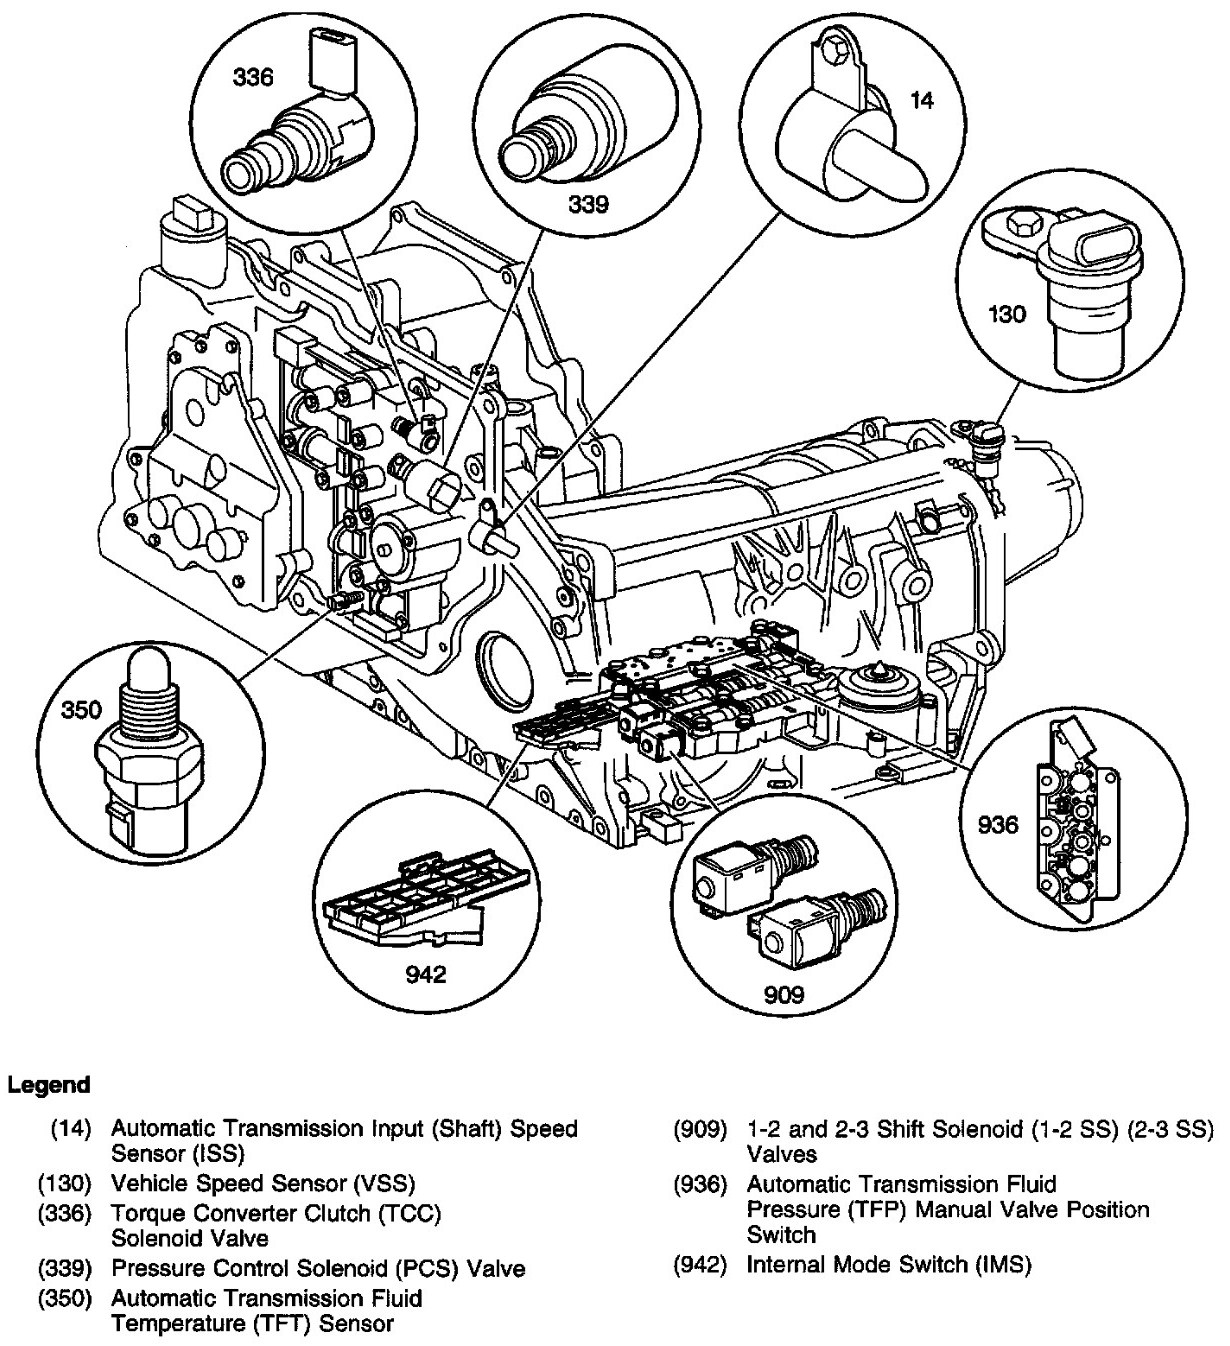 2002 cadillac deville problems codes